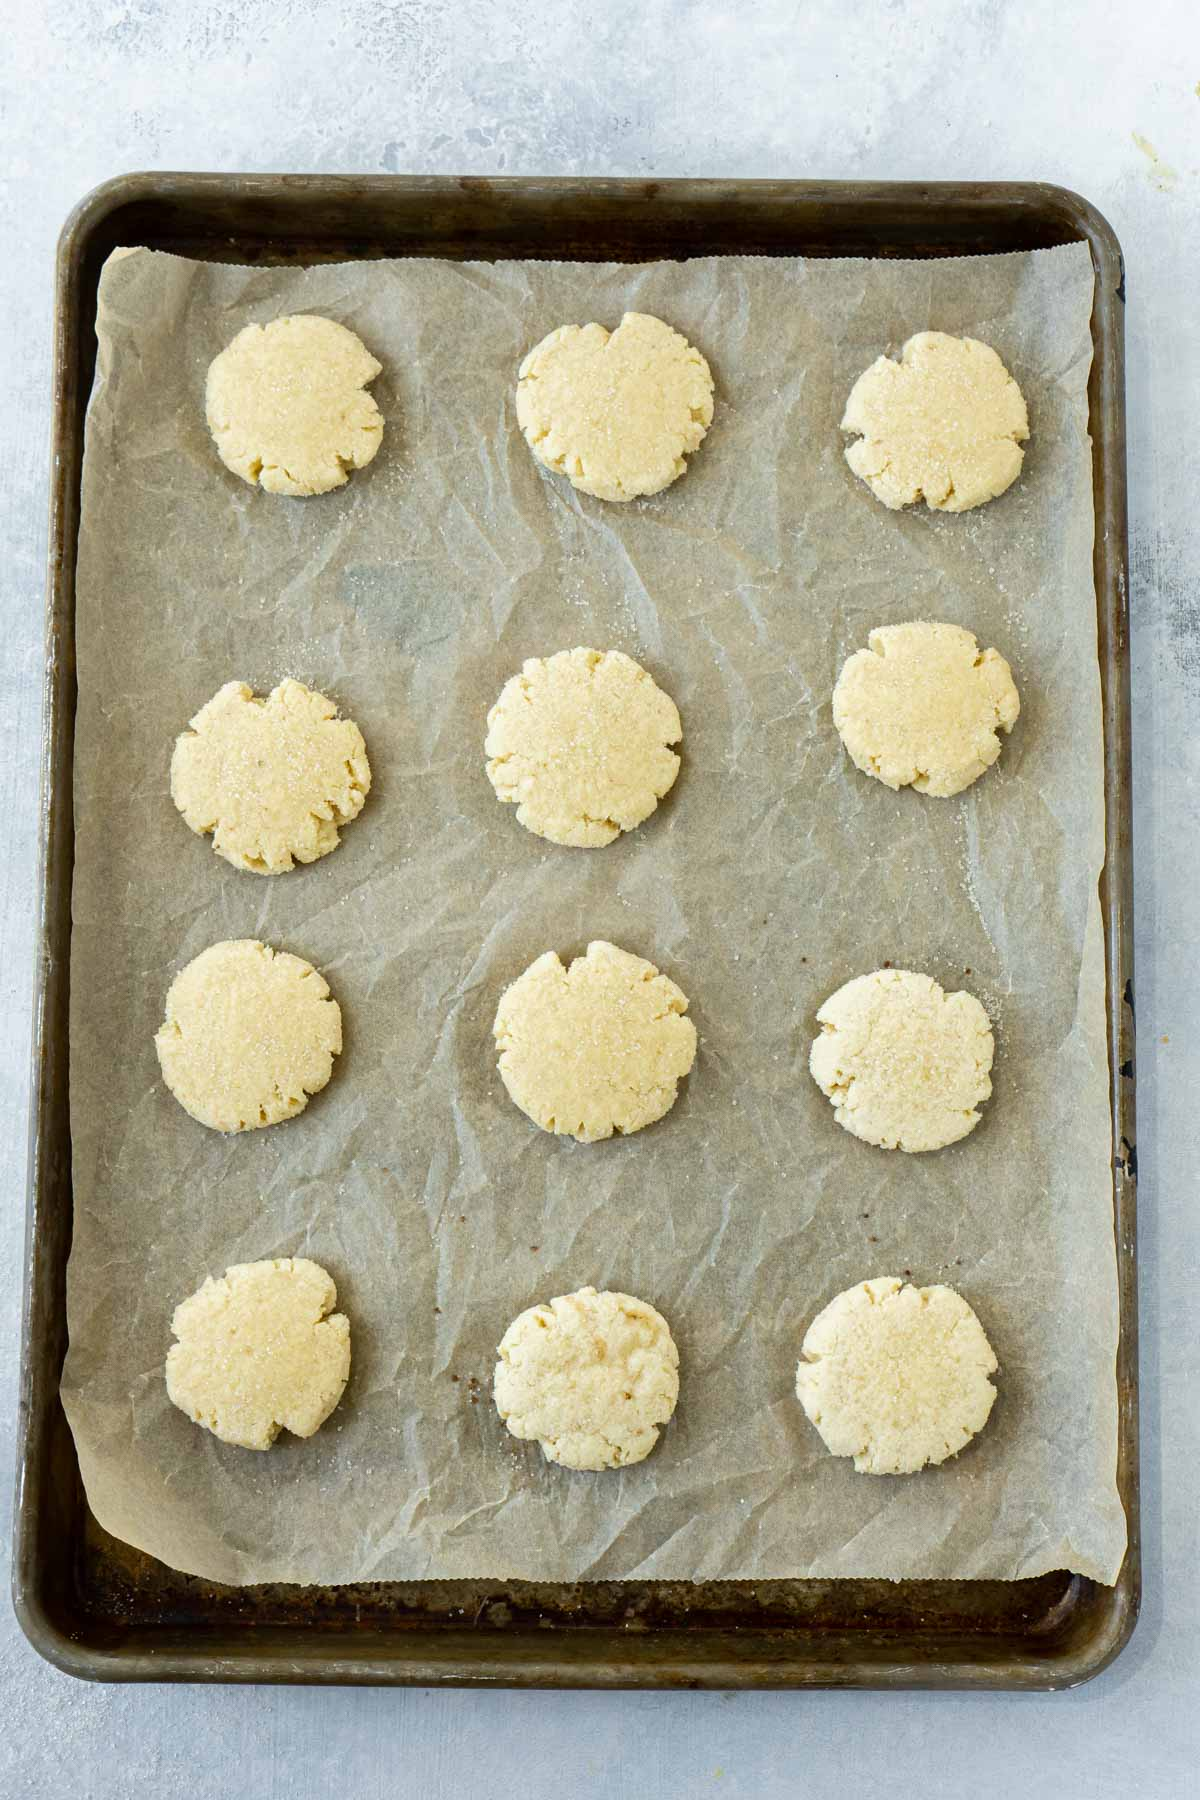 Baking sheet with orange sugar cookies ready to be baked